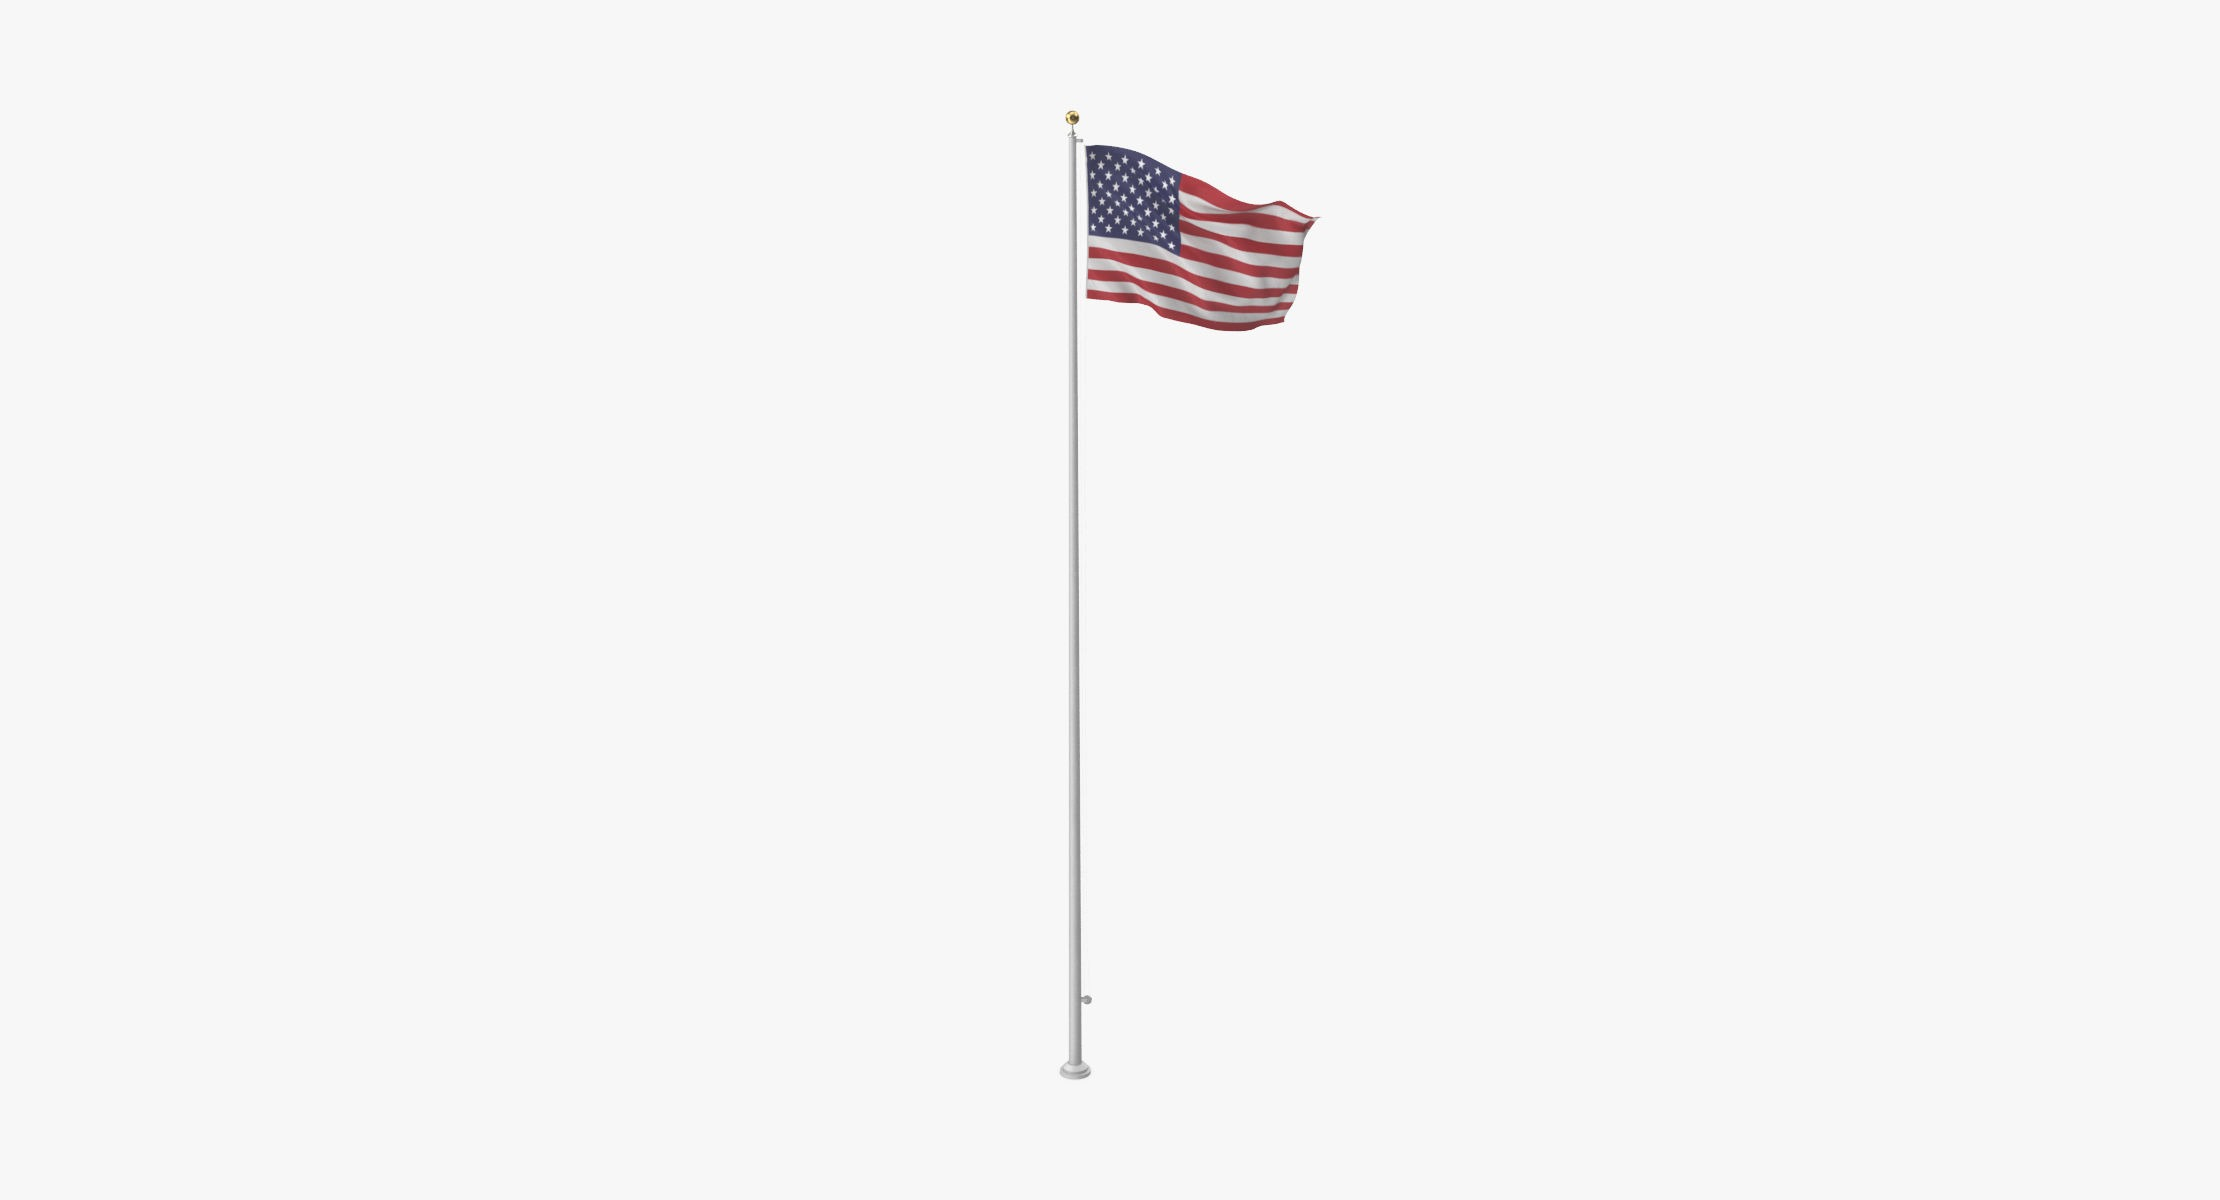 US flag 01 - reel 1